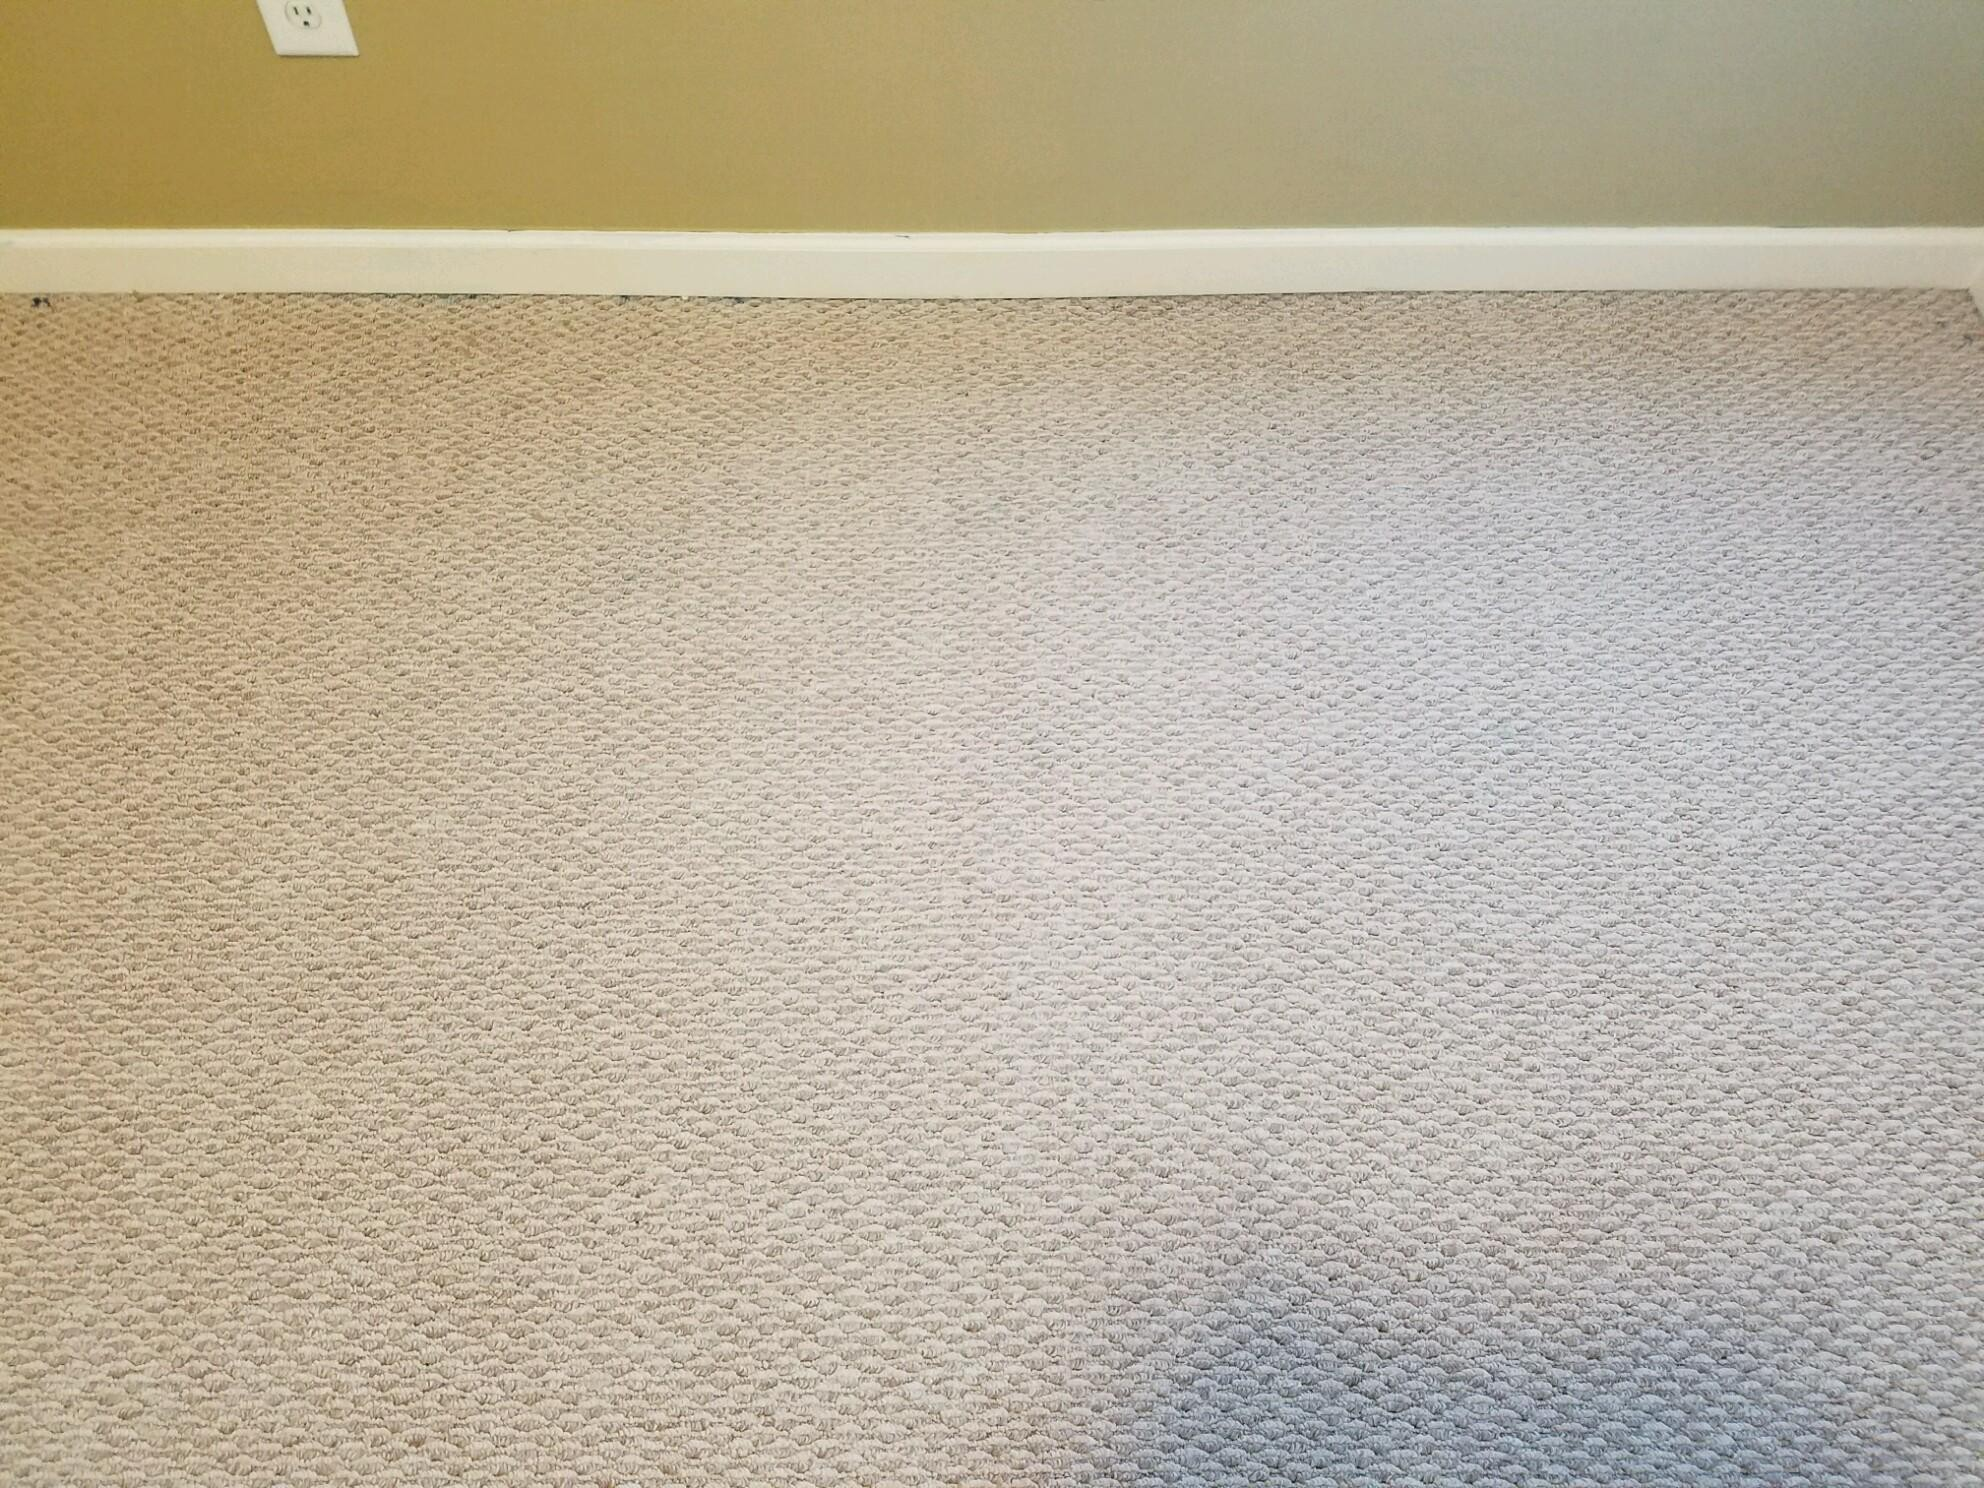 Carpet Installation Charlotte Nc